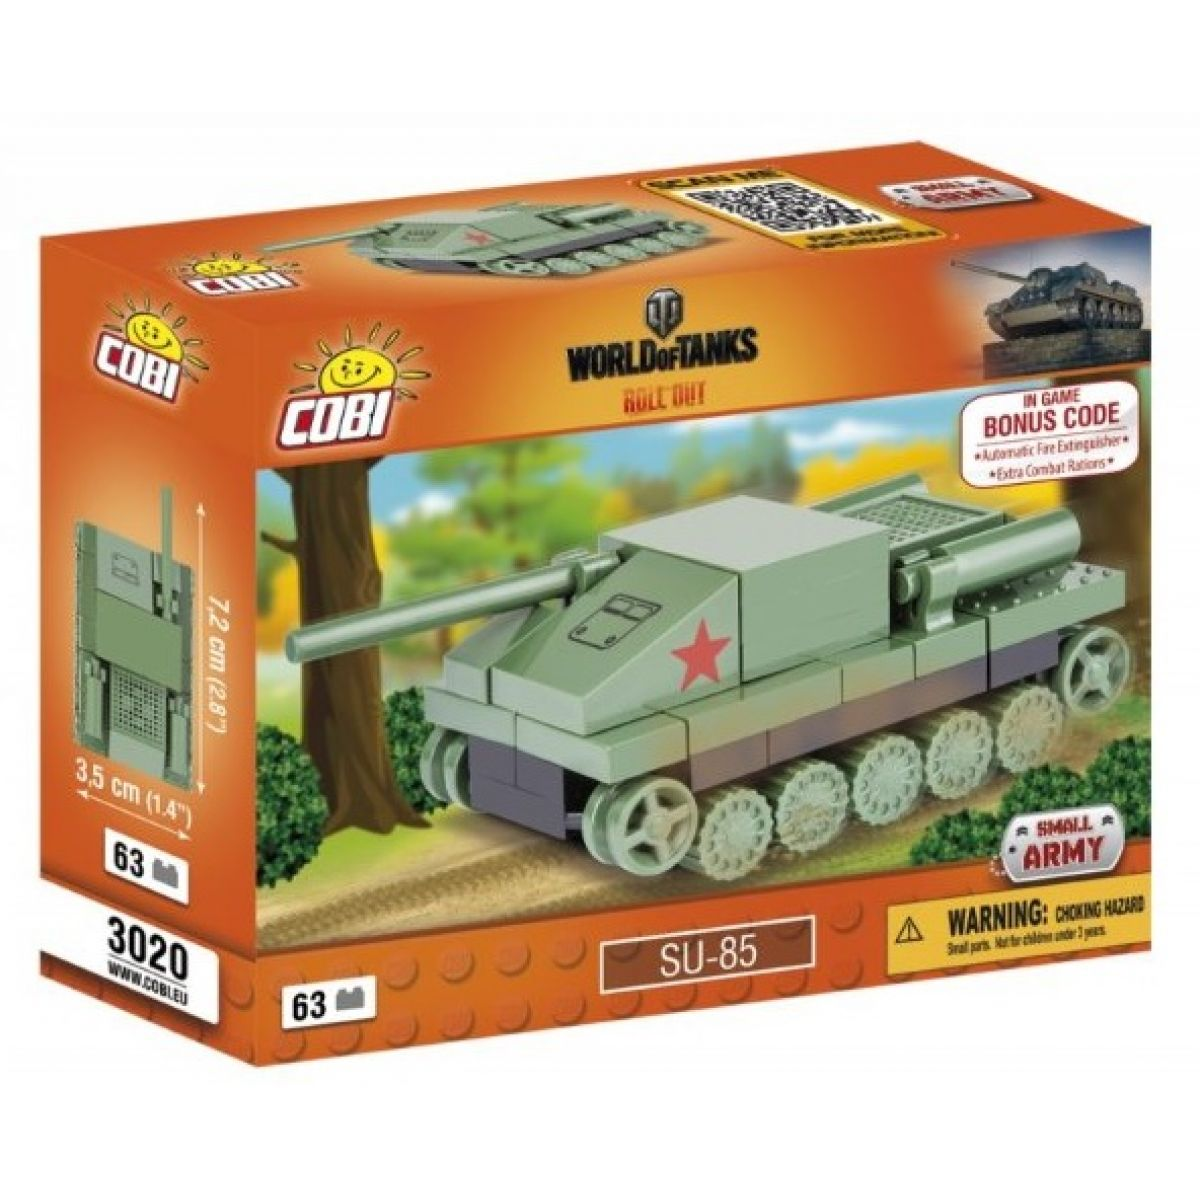 COBI 3020 WORLD of TANKS Nano Tank SU 85 63 k